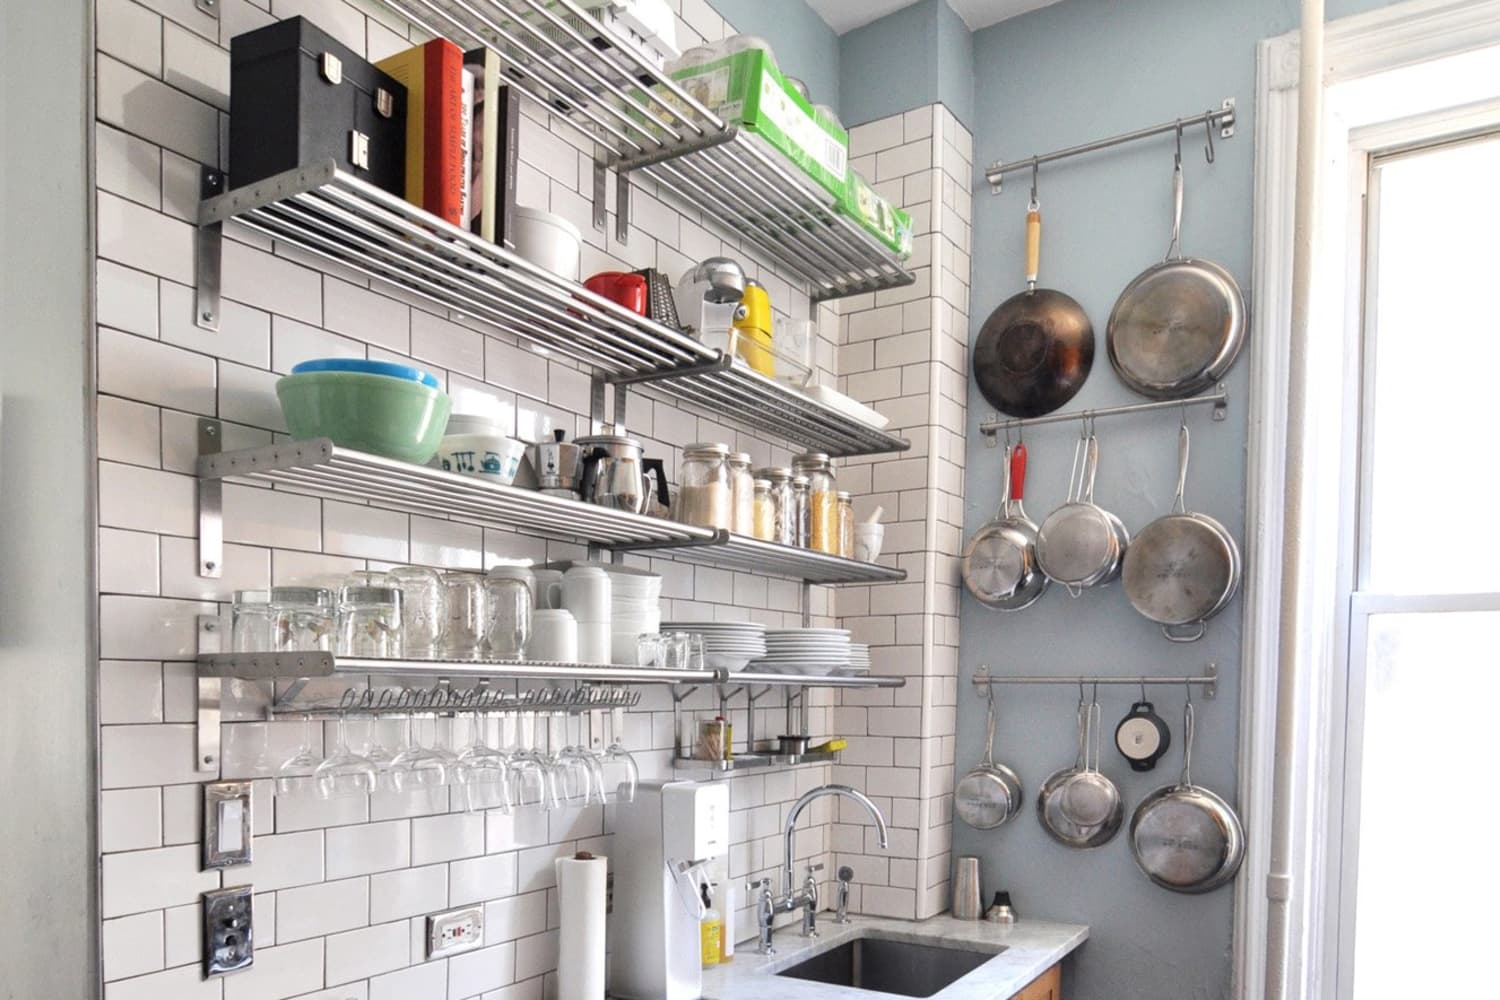 How To Organize A Small Apartment Kitchen 7 Step Plan Therapy